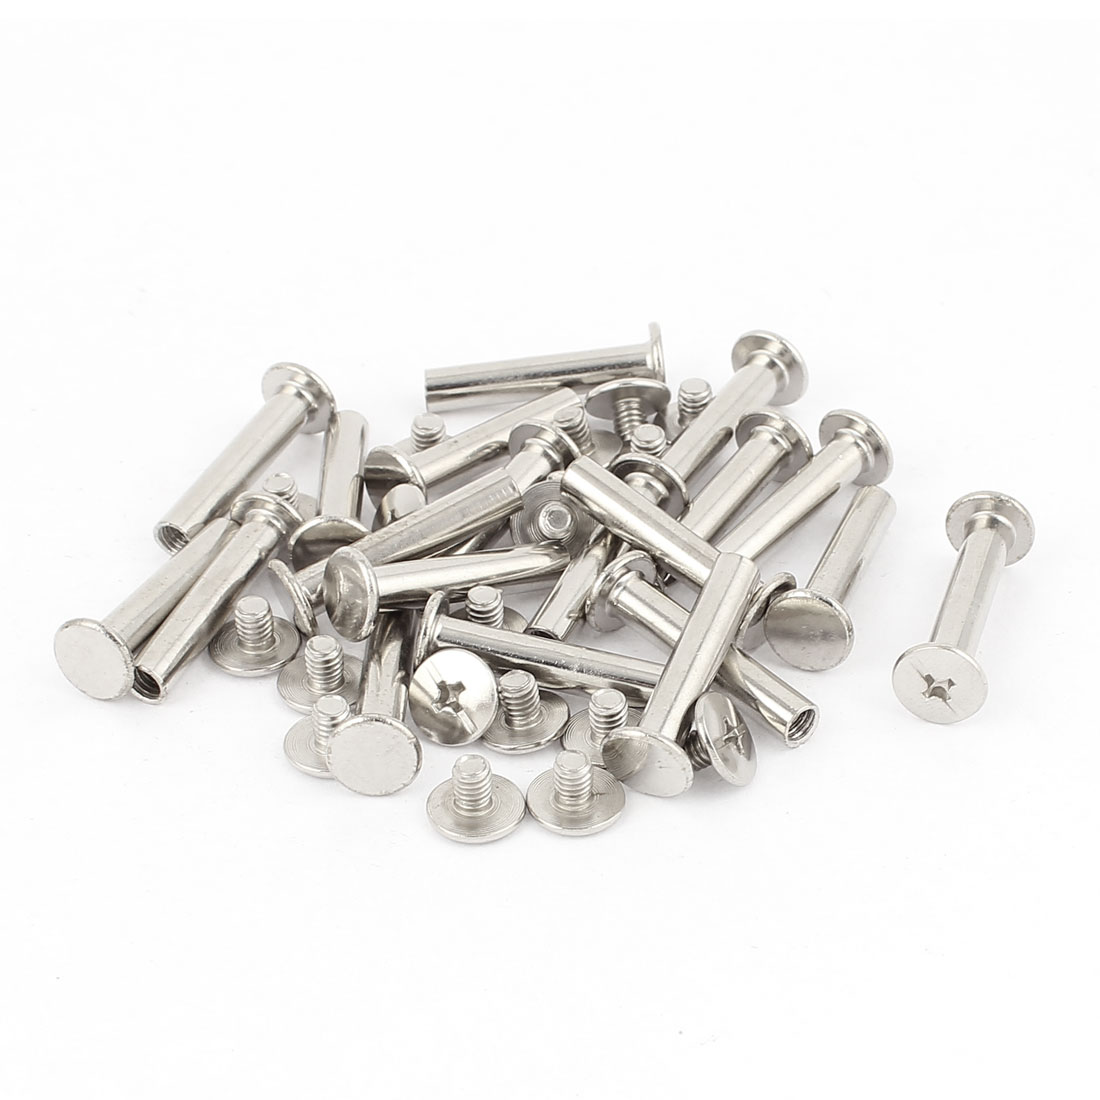 20Pcs M5x25mm Nickel Plated Binding Screw Post for Scrapbook Photo Albums